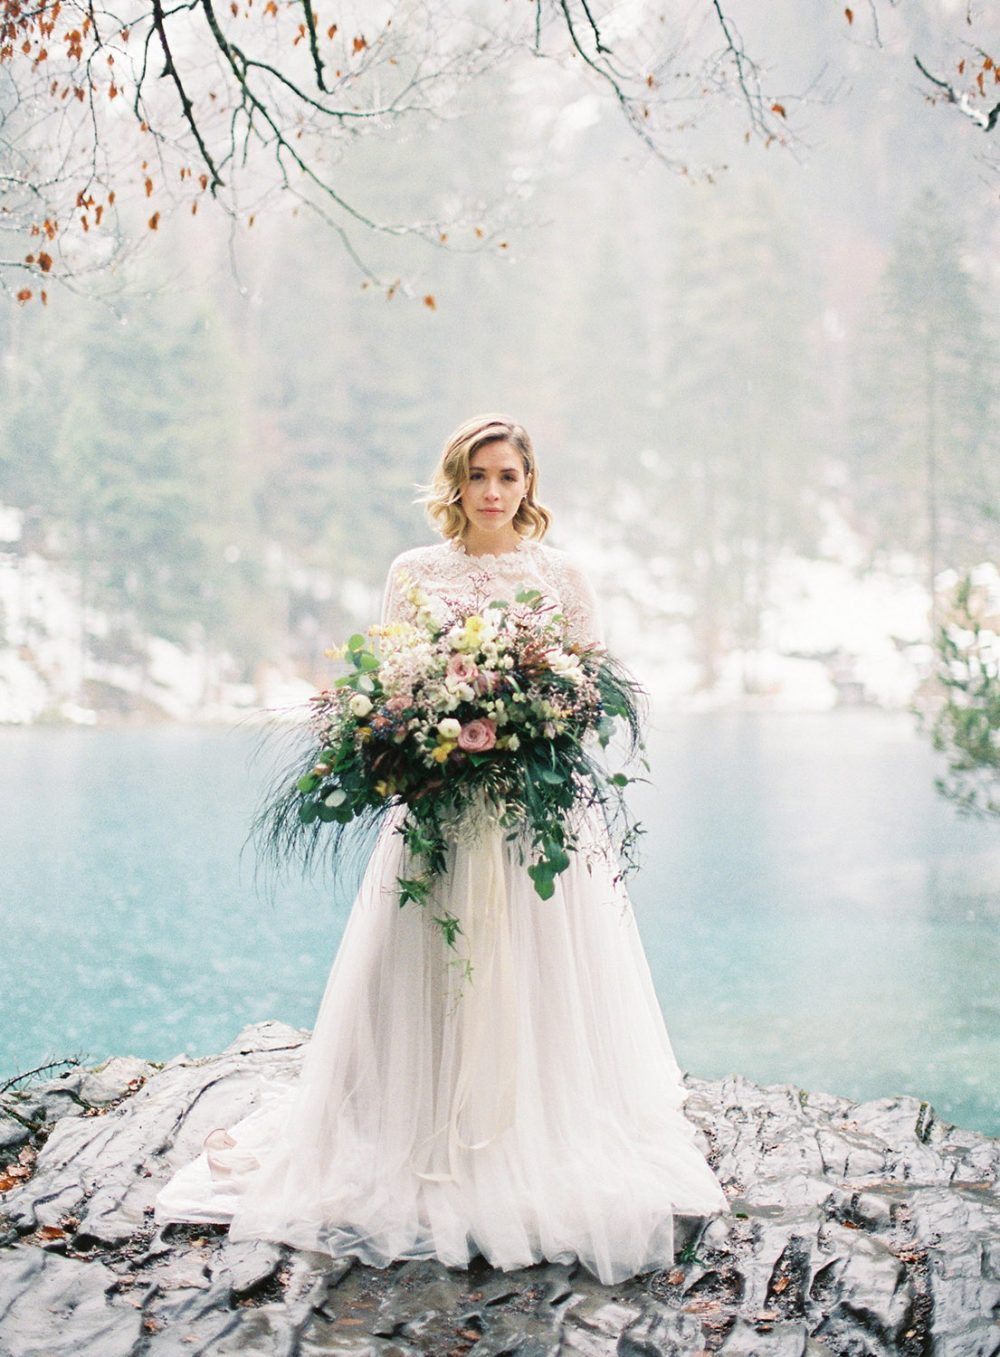 Tabea Maria-Lisa Momento Cativo Photography featured on Style Me Pretty Switzerland Schweiz Hochzeit Blausee